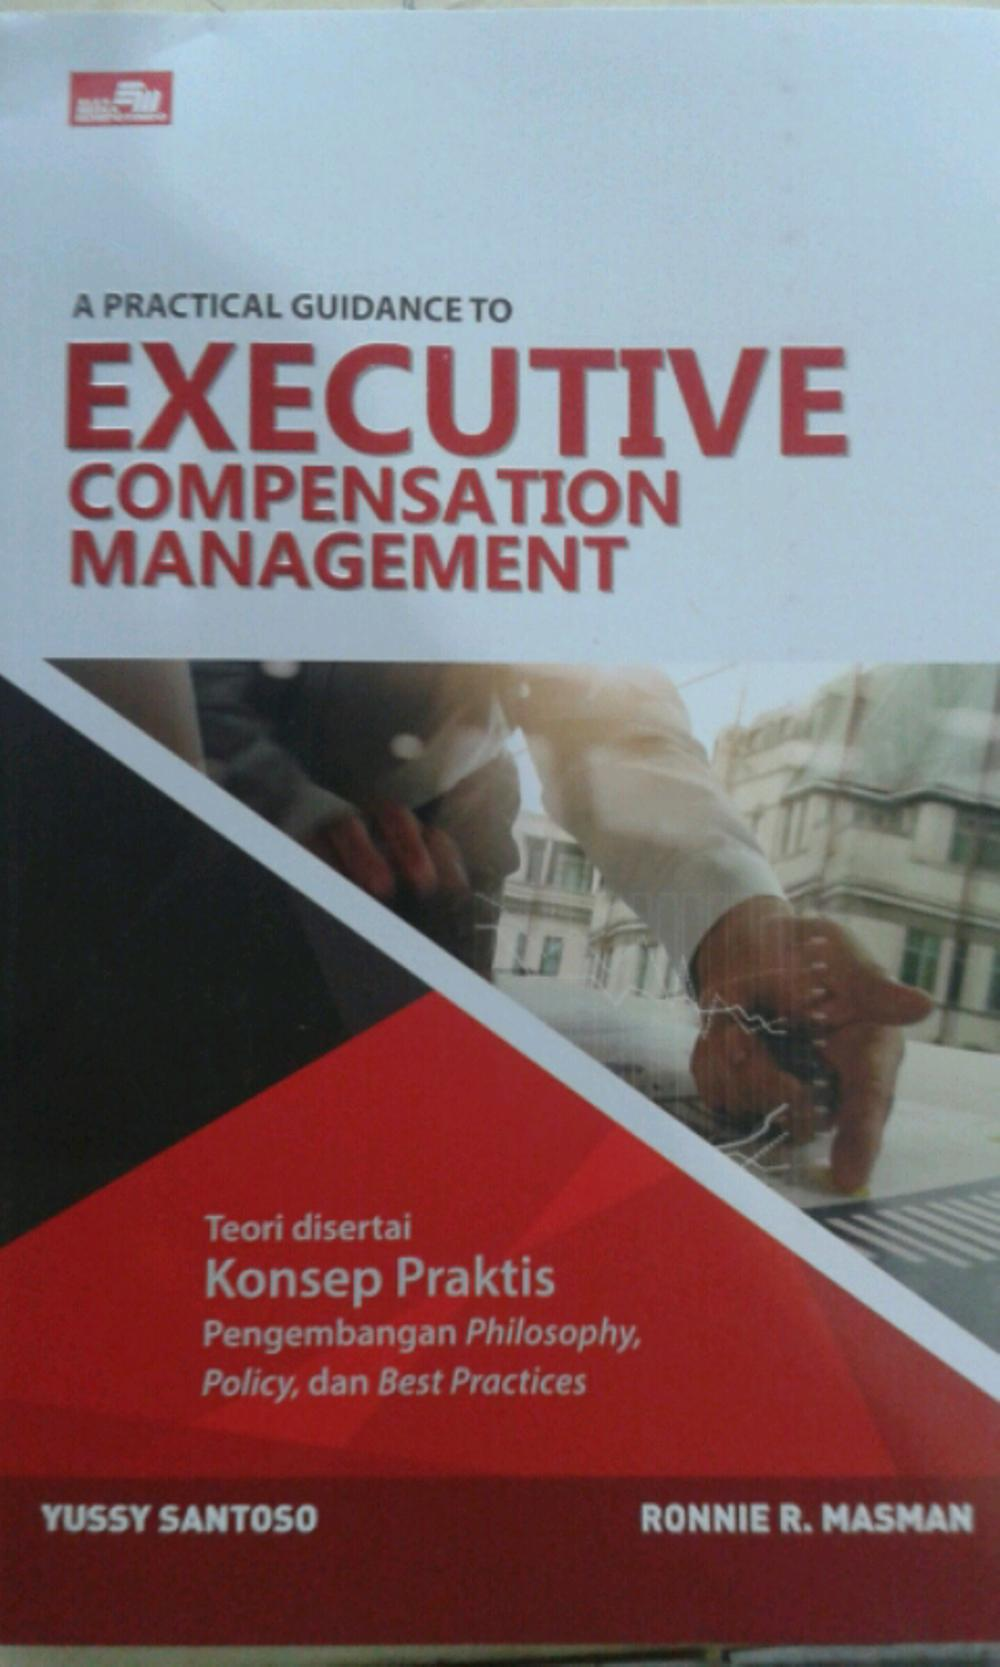 A practical guidance to executive compensation management